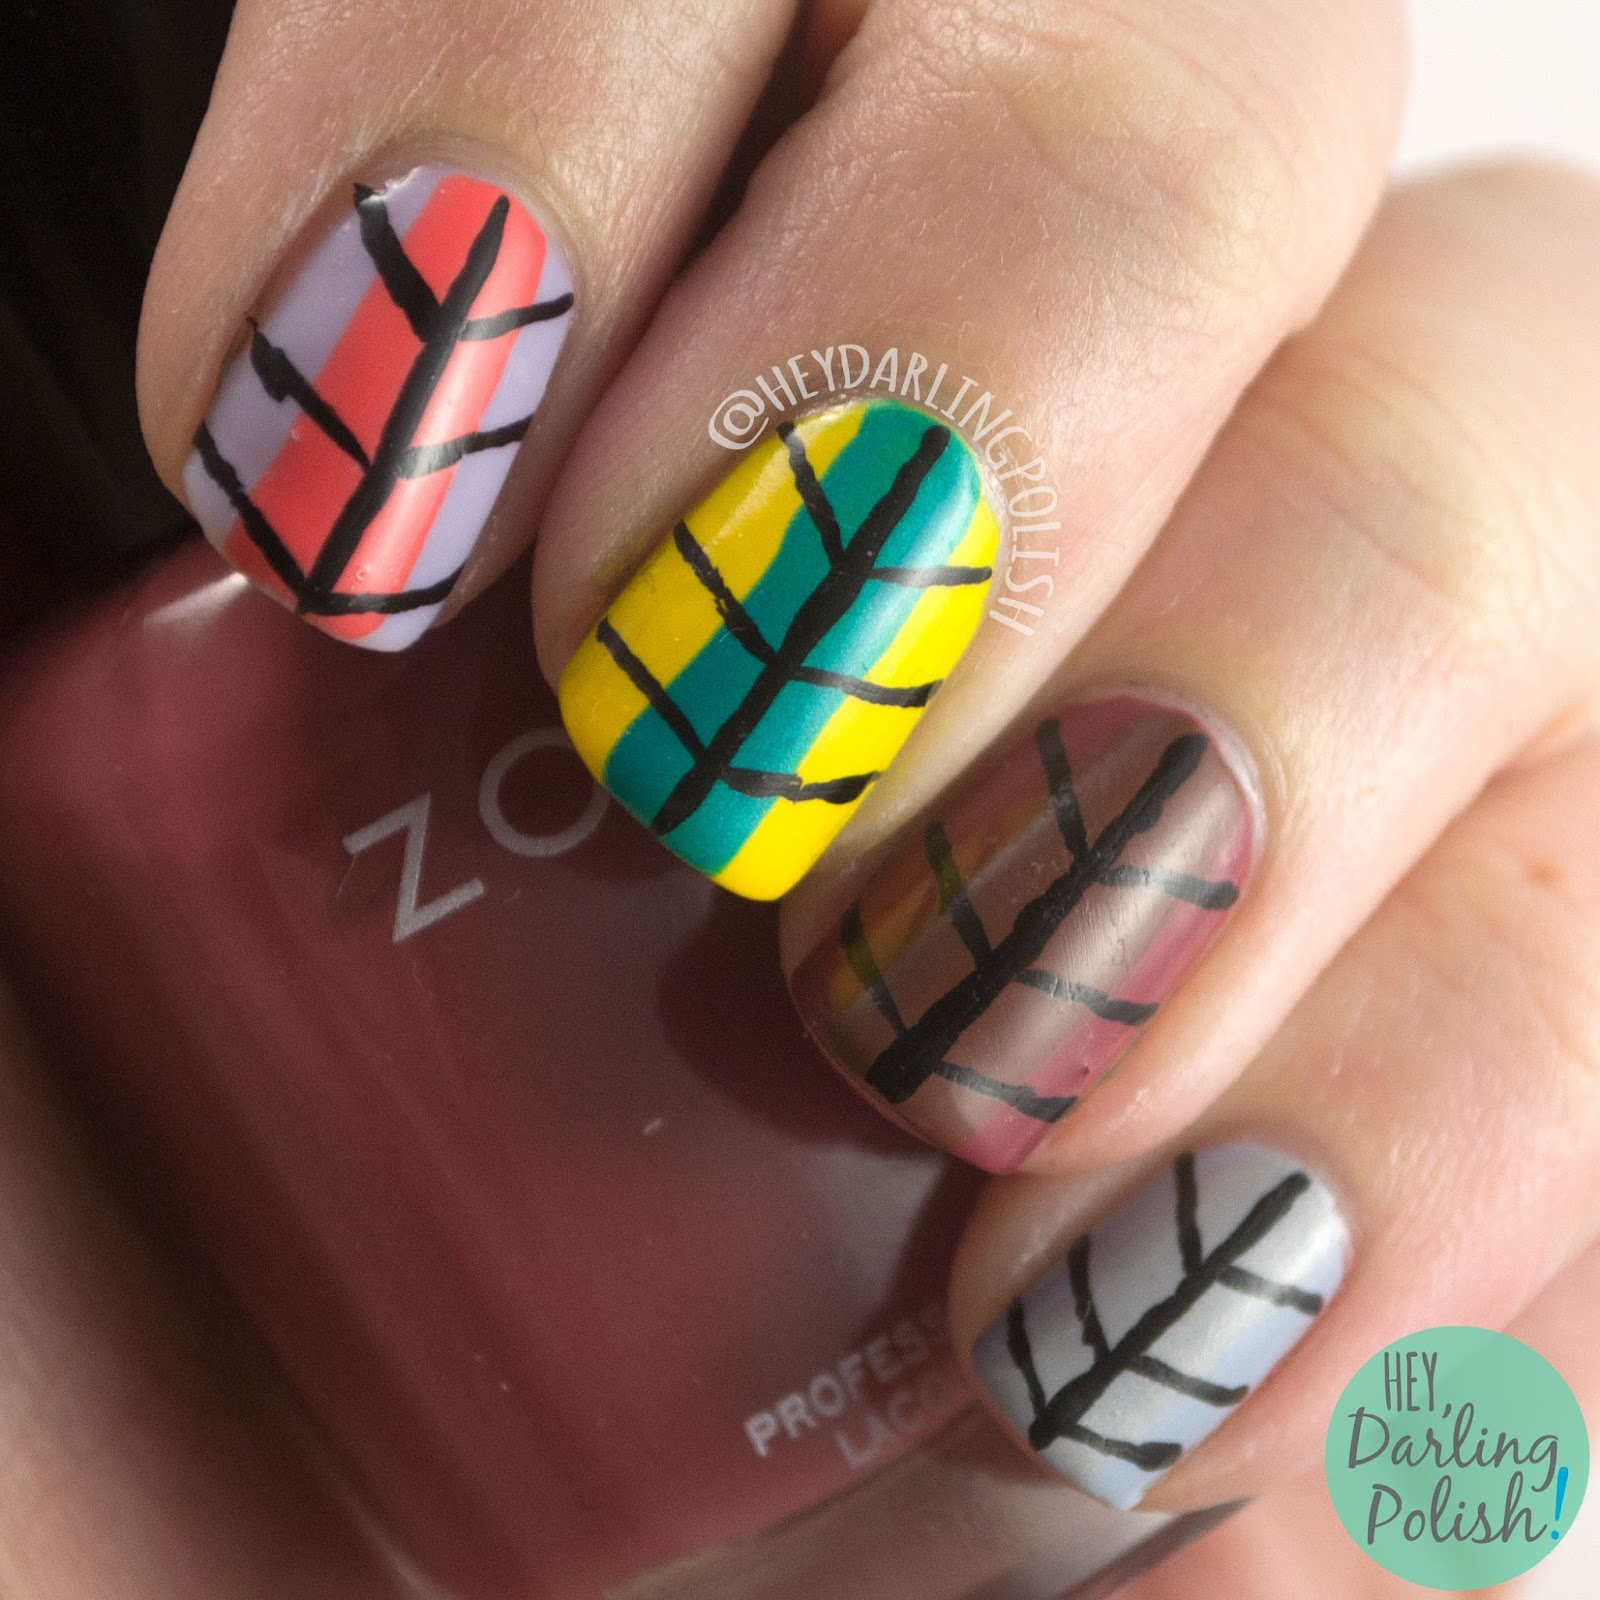 nails, nail art, nail polish, seasons, the nail art guild, stripes, hey darling polish